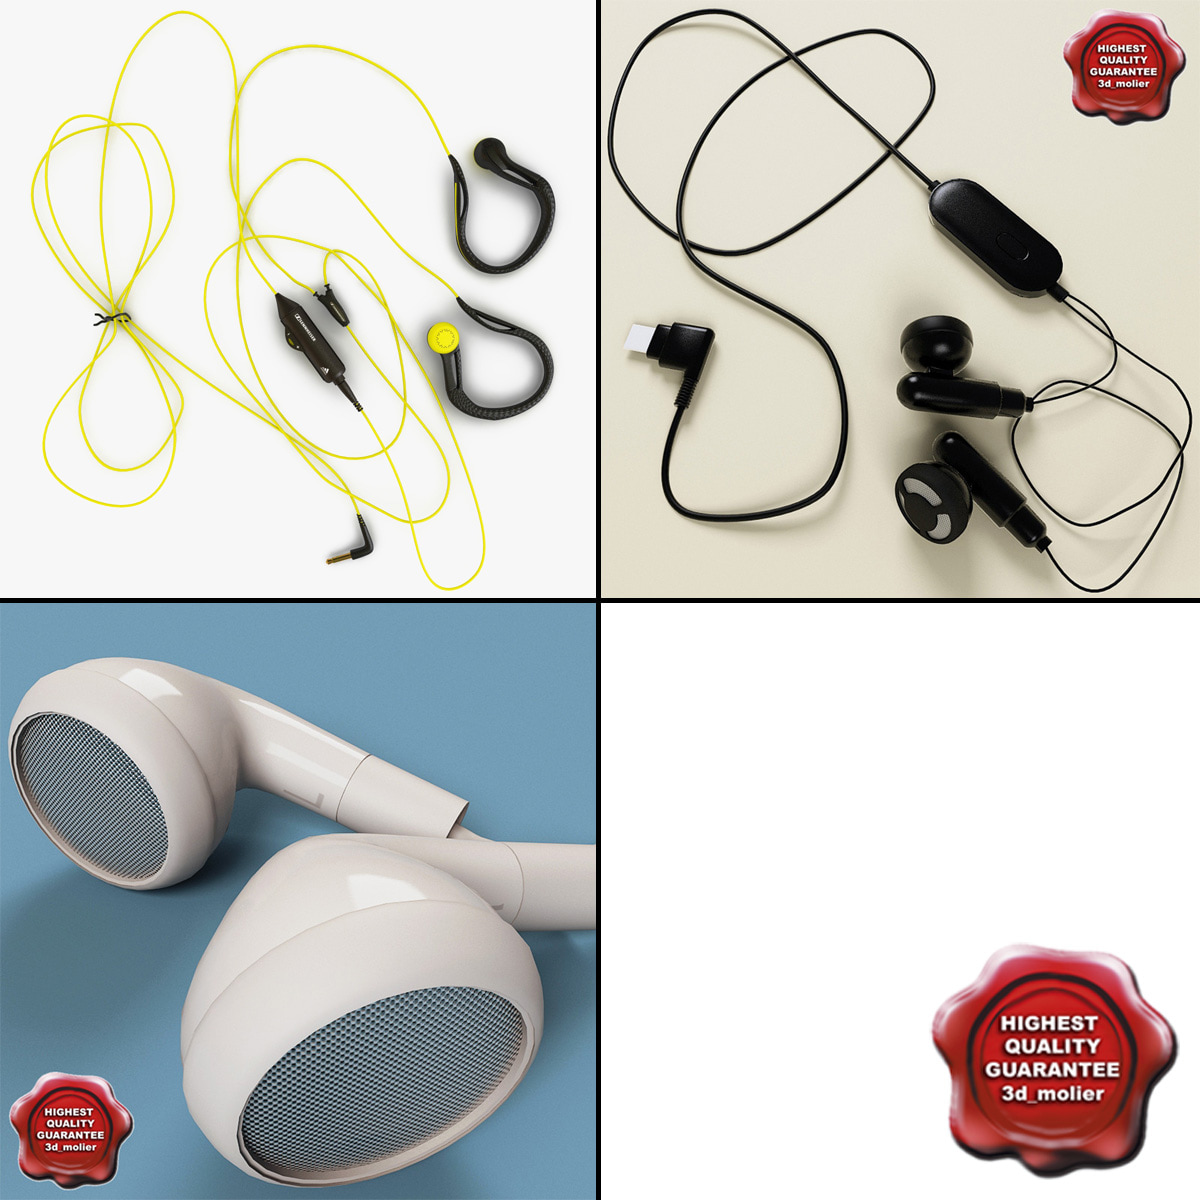 Earphones_Collection_00.jpg